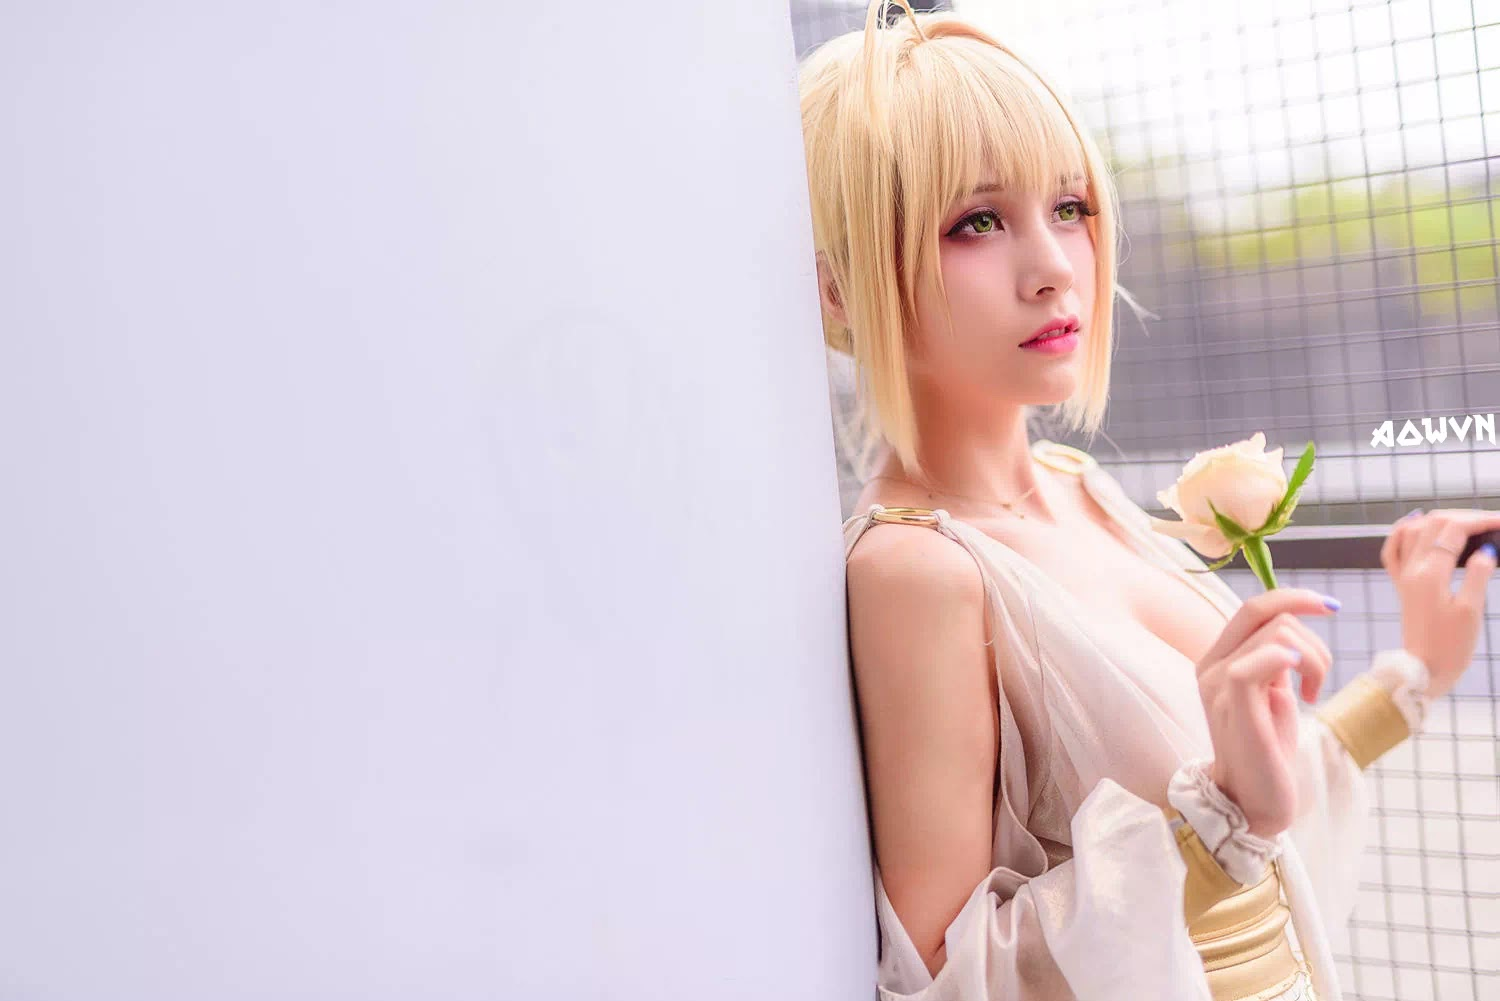 AowVN.org minz%2B%25289%2529 - [ Cosplay ] Nero - Saber anime Fate by Xia Mei Jiang tuyệt đẹp | AowVN Wallpapers